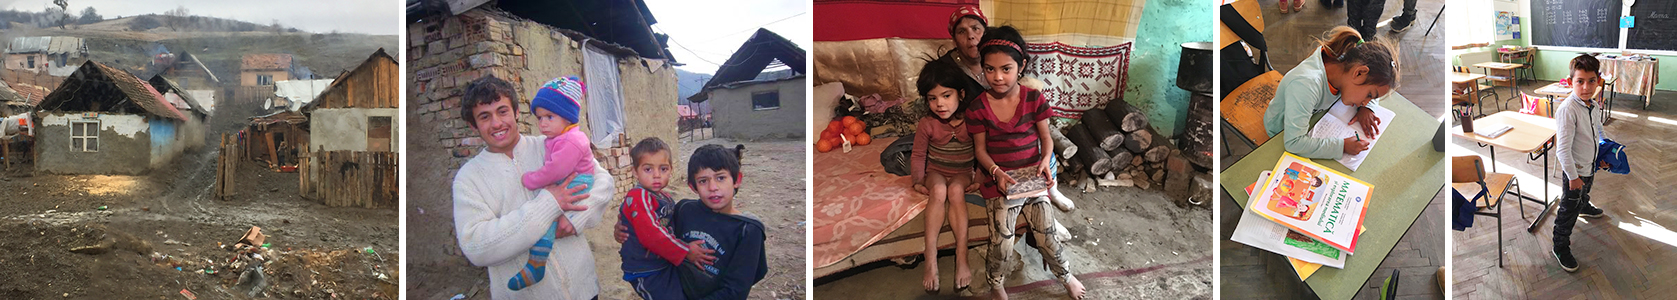 Photo Collage 1 of The Albesti Project